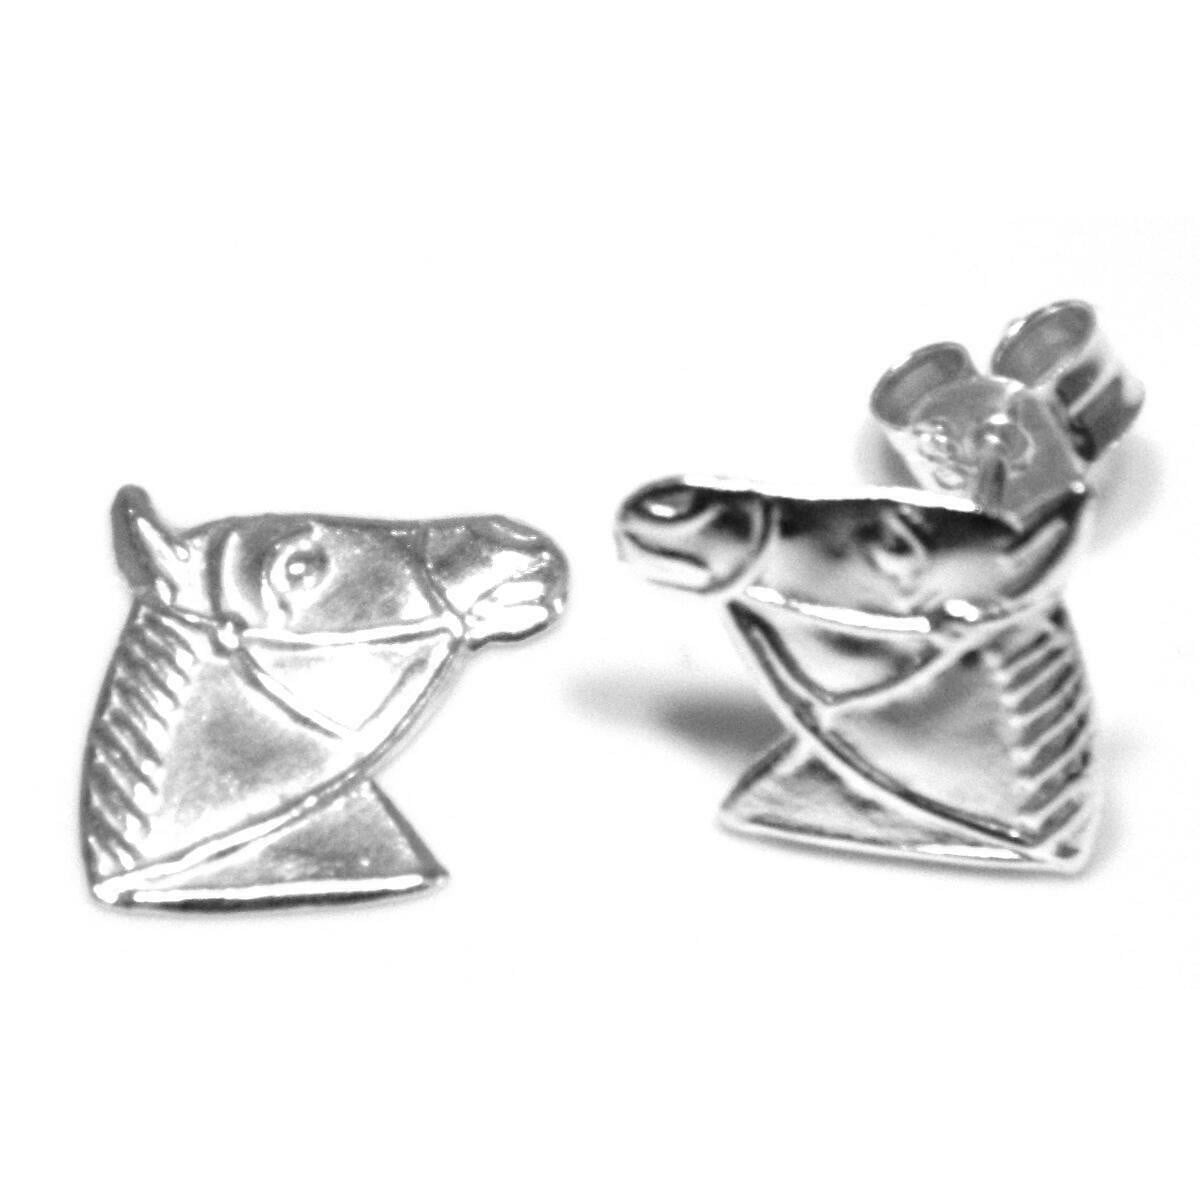 Horse head stud earrings in sterling silver